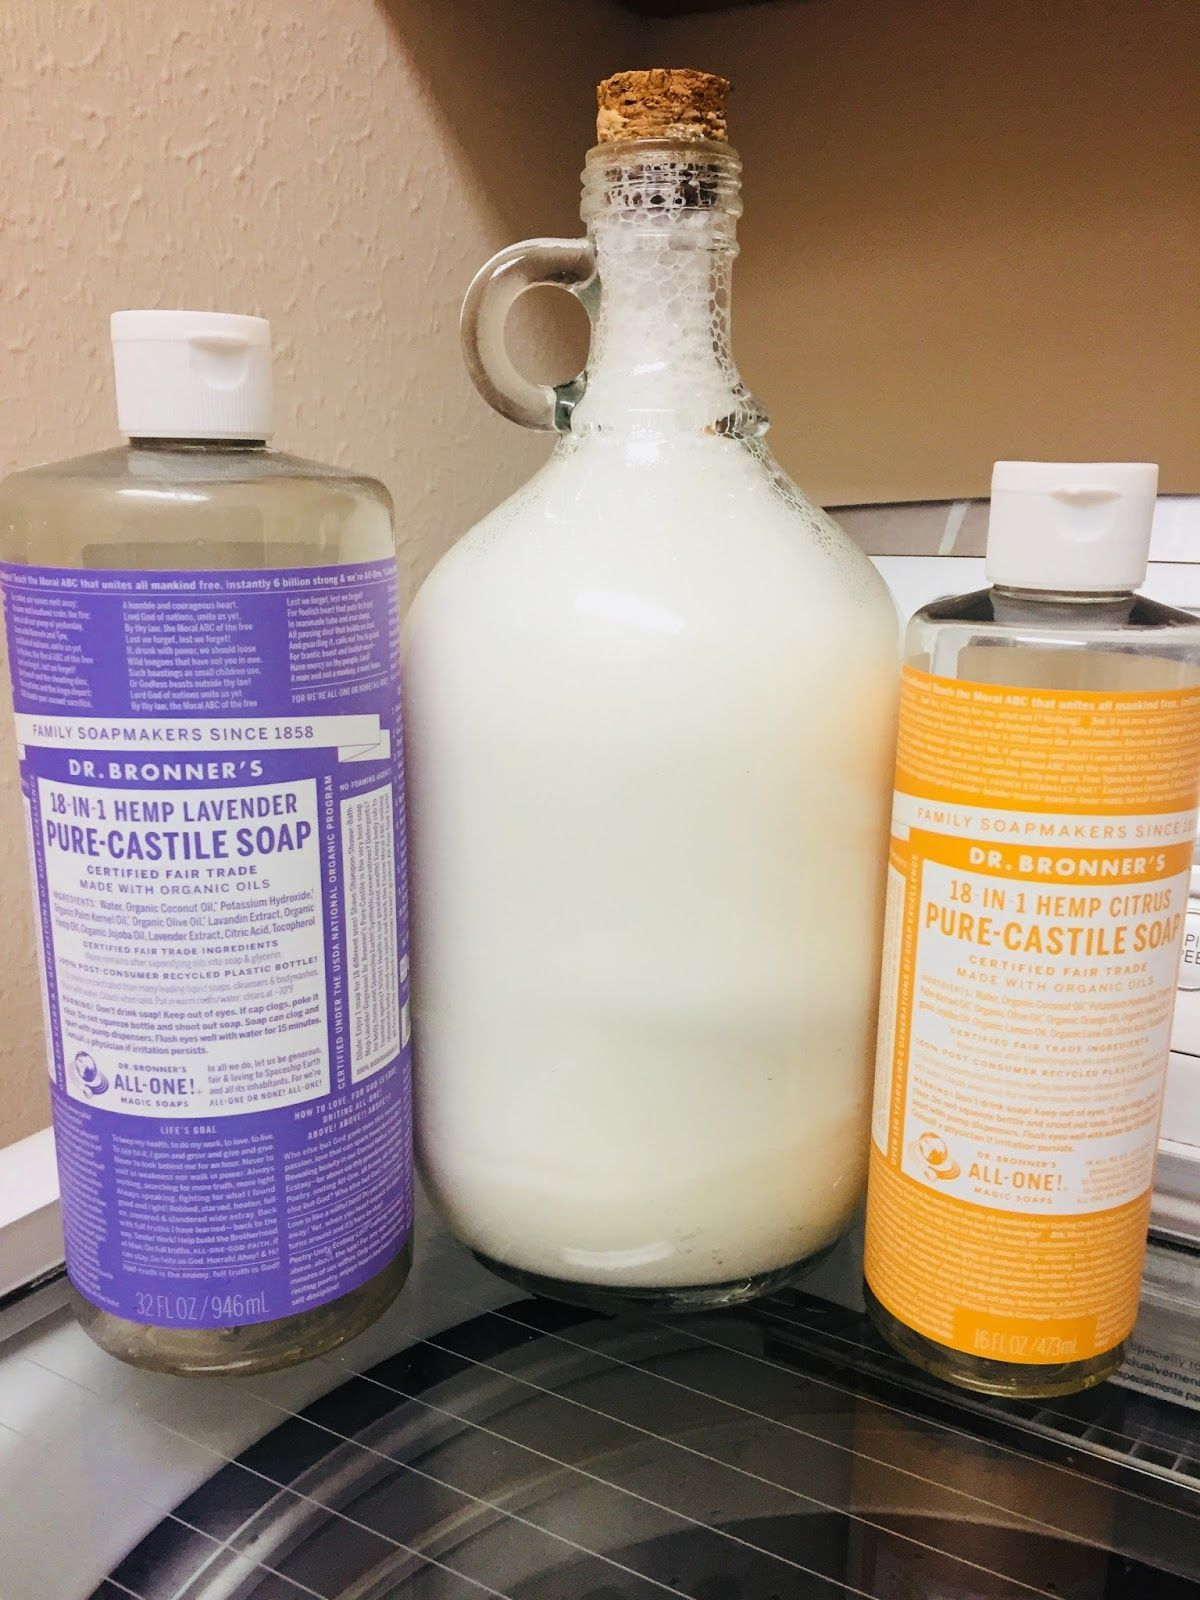 Chemical Free Laundry Soap In 2020 Free Laundry Soap Laundry